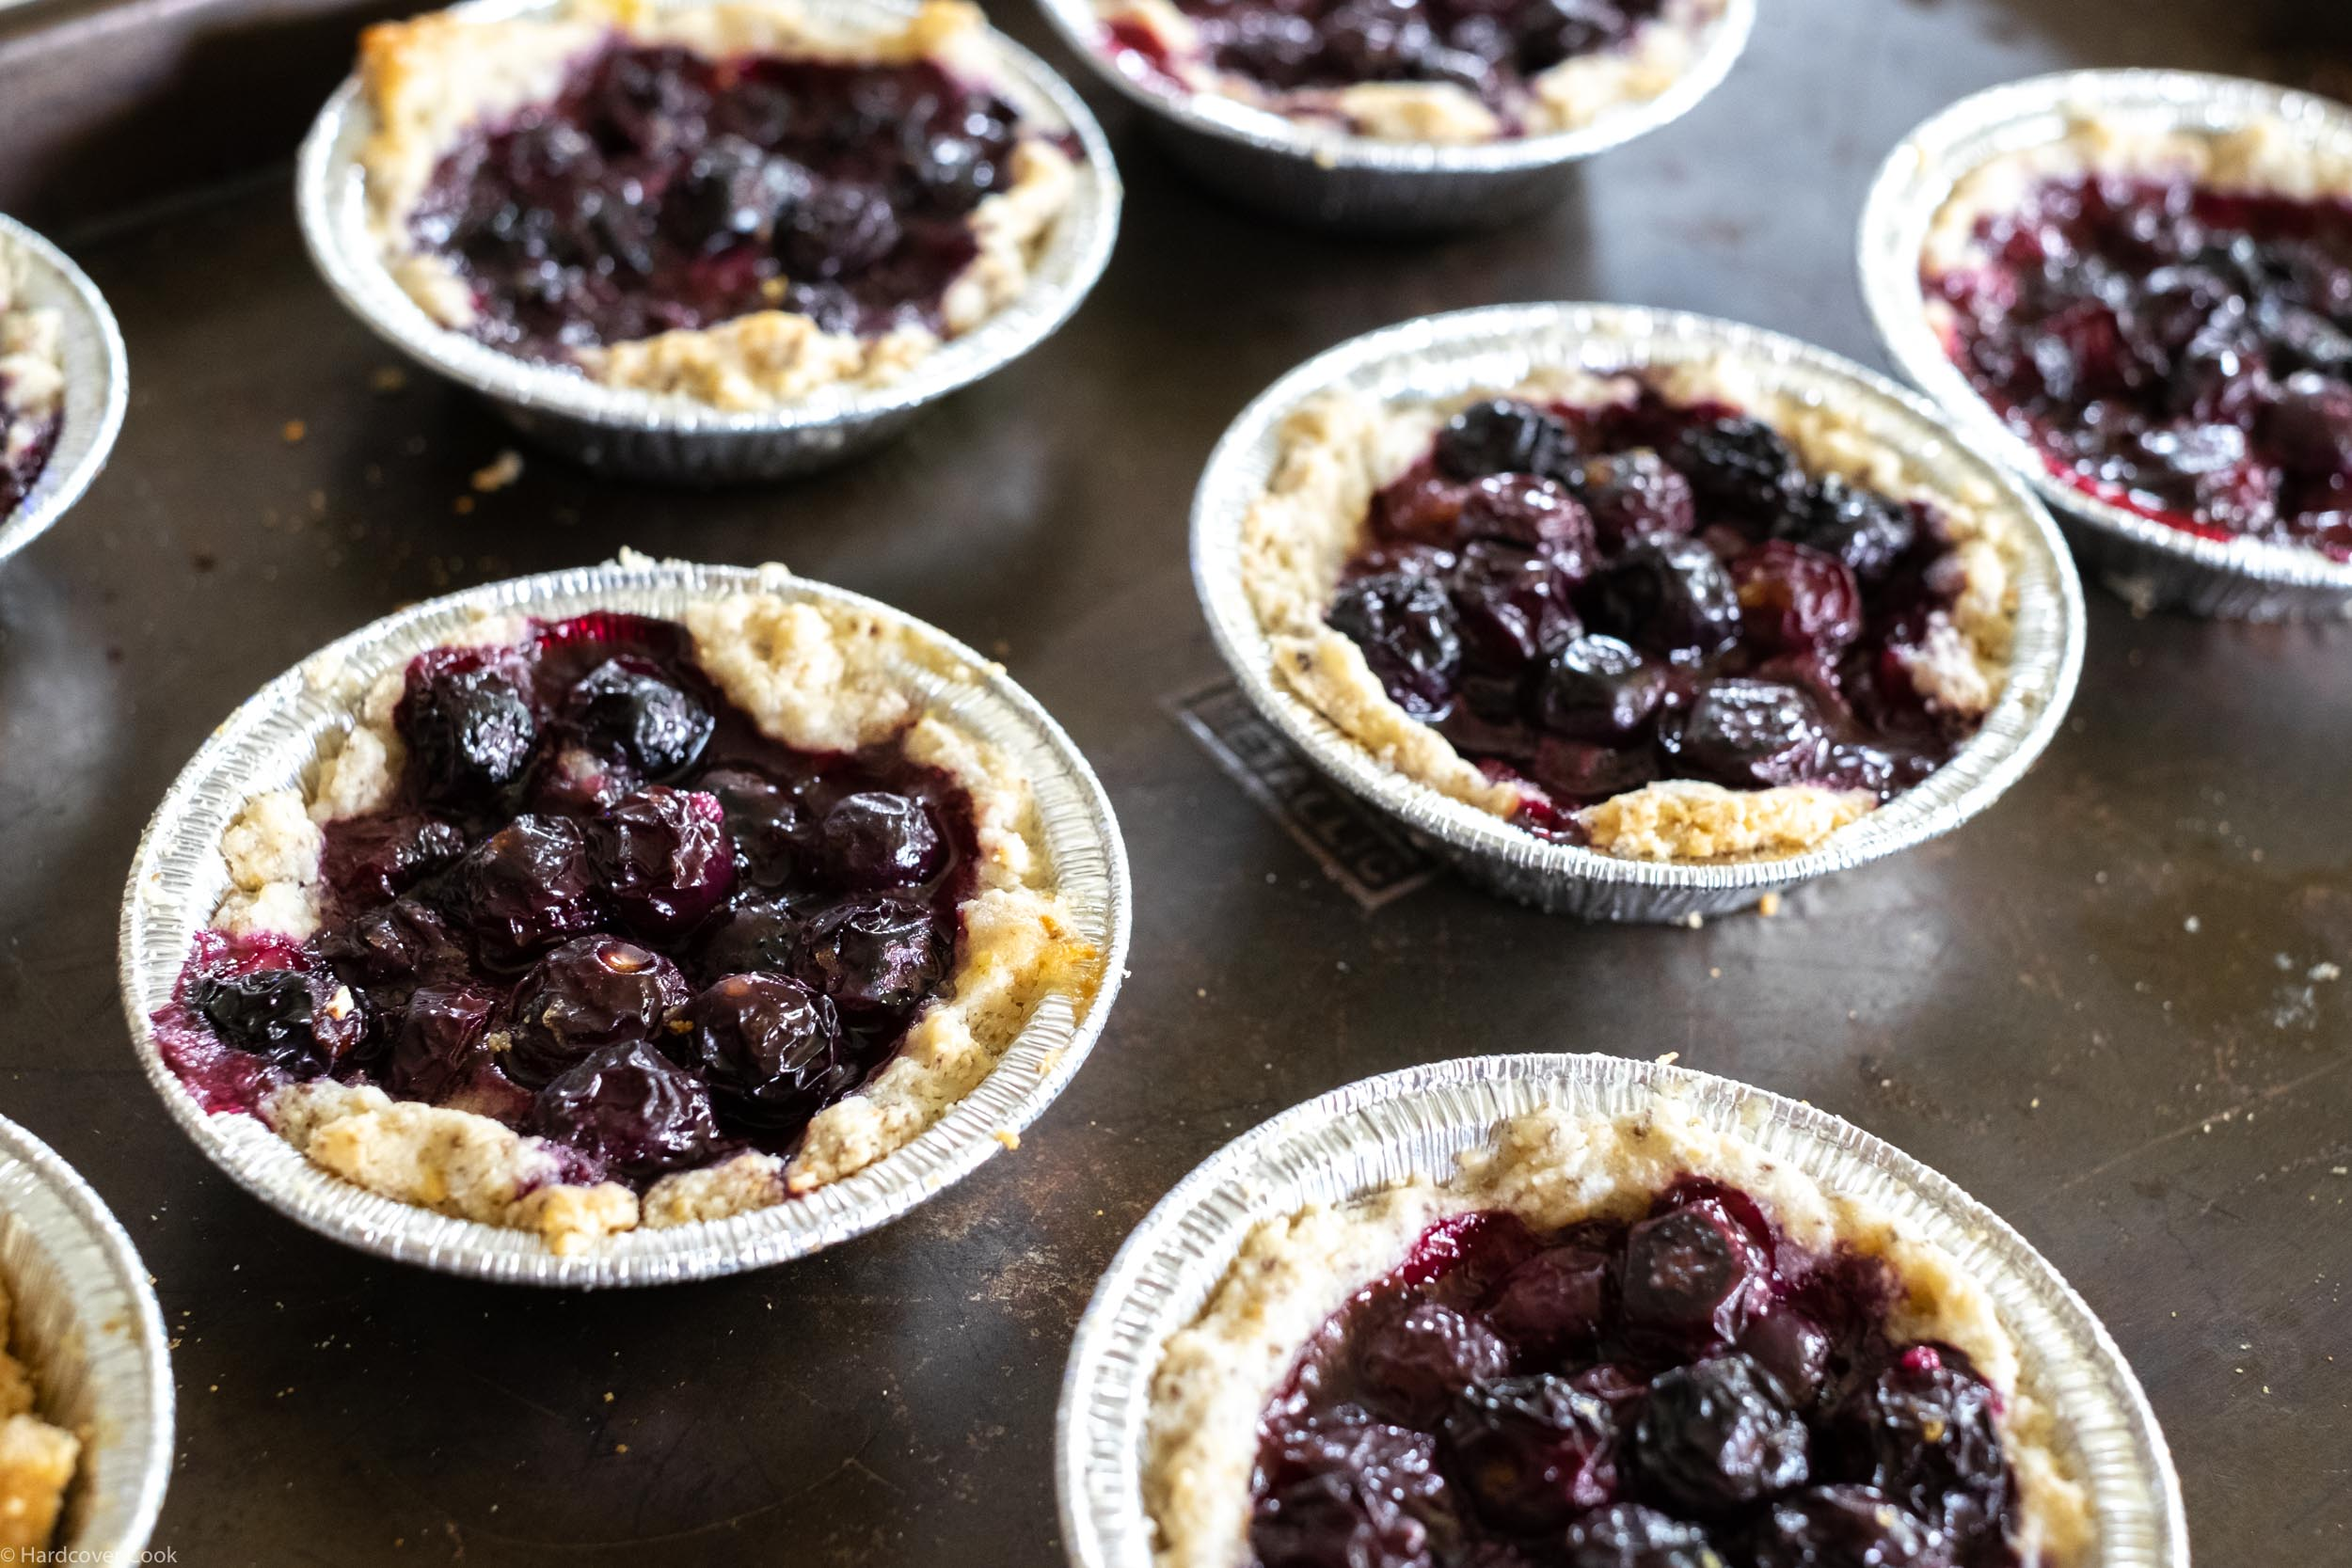 Blueberry Hand Pies with Coconut Oil Pie Dough from Alternative Baker